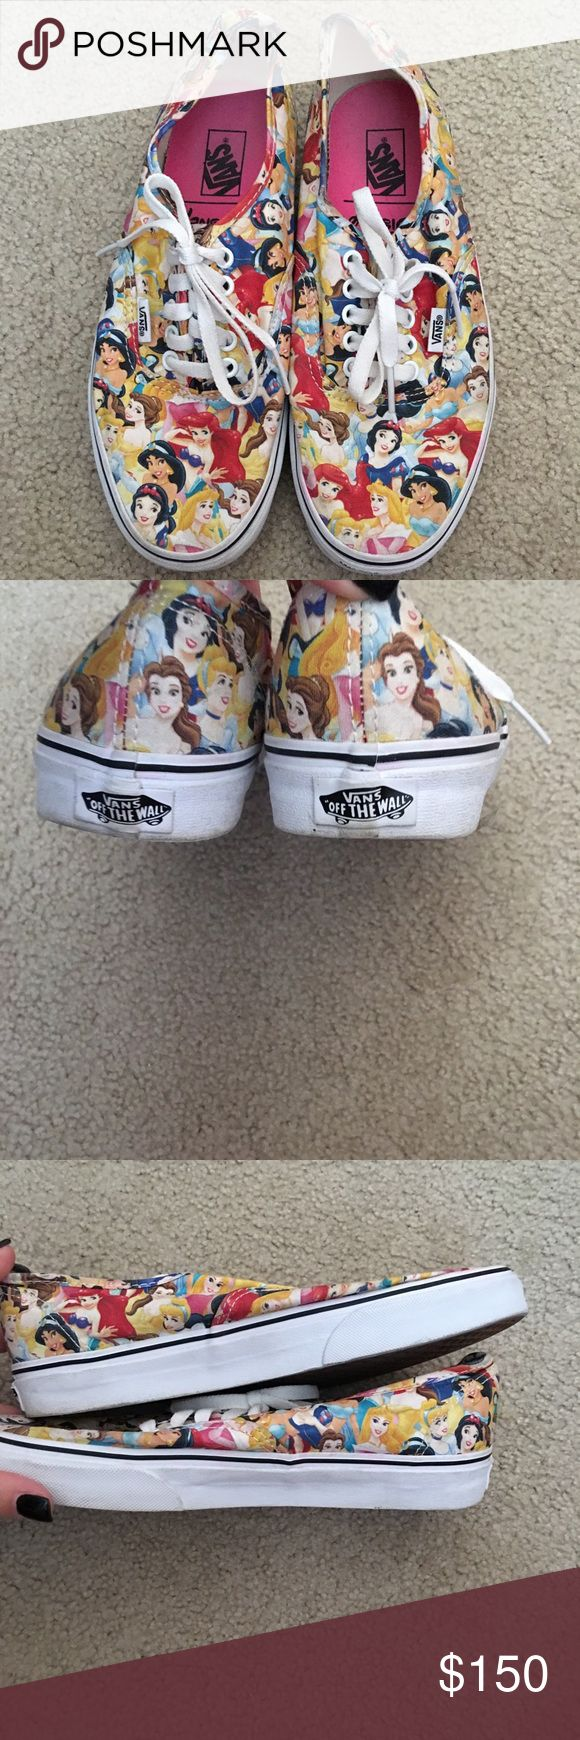 Disney Princess Vans! Mens 7.5, womens 9. Worn probably 5 times. There are some marks/skuffs throughout. I'm only selling them because they no longer fit. Reasonable offers are welcomed but lowballs will be ignored. These were limited edition and are no longer available, so please keep that in mind when sending over offers! No trades. Vans Shoes